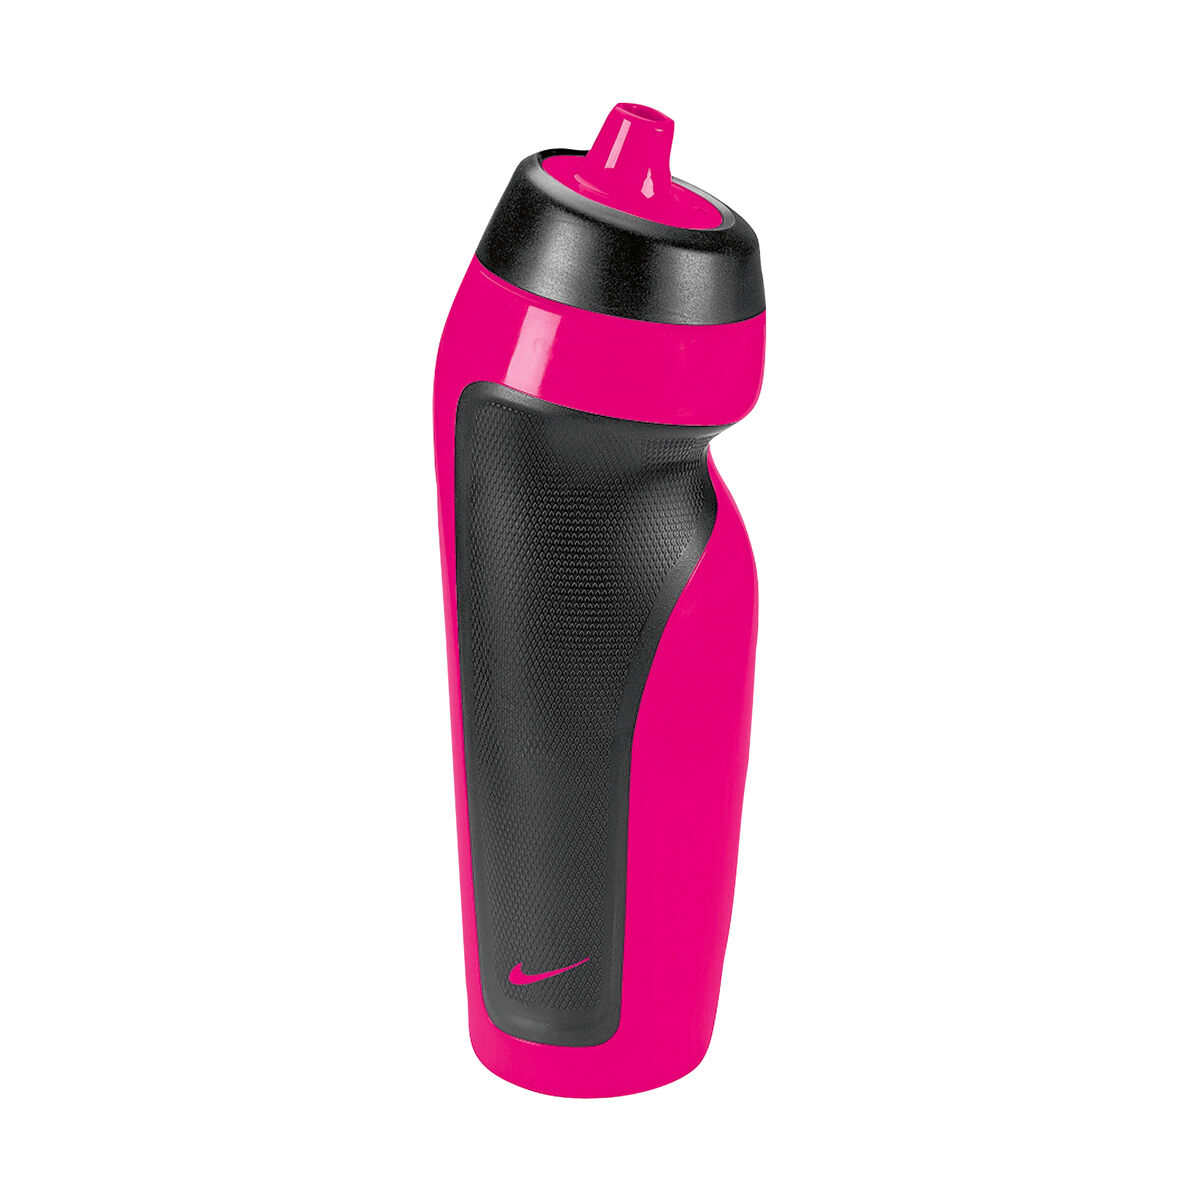 Gym Running Drinks Bottle Phoenix Fitness Sports Drink Water Bottle For and